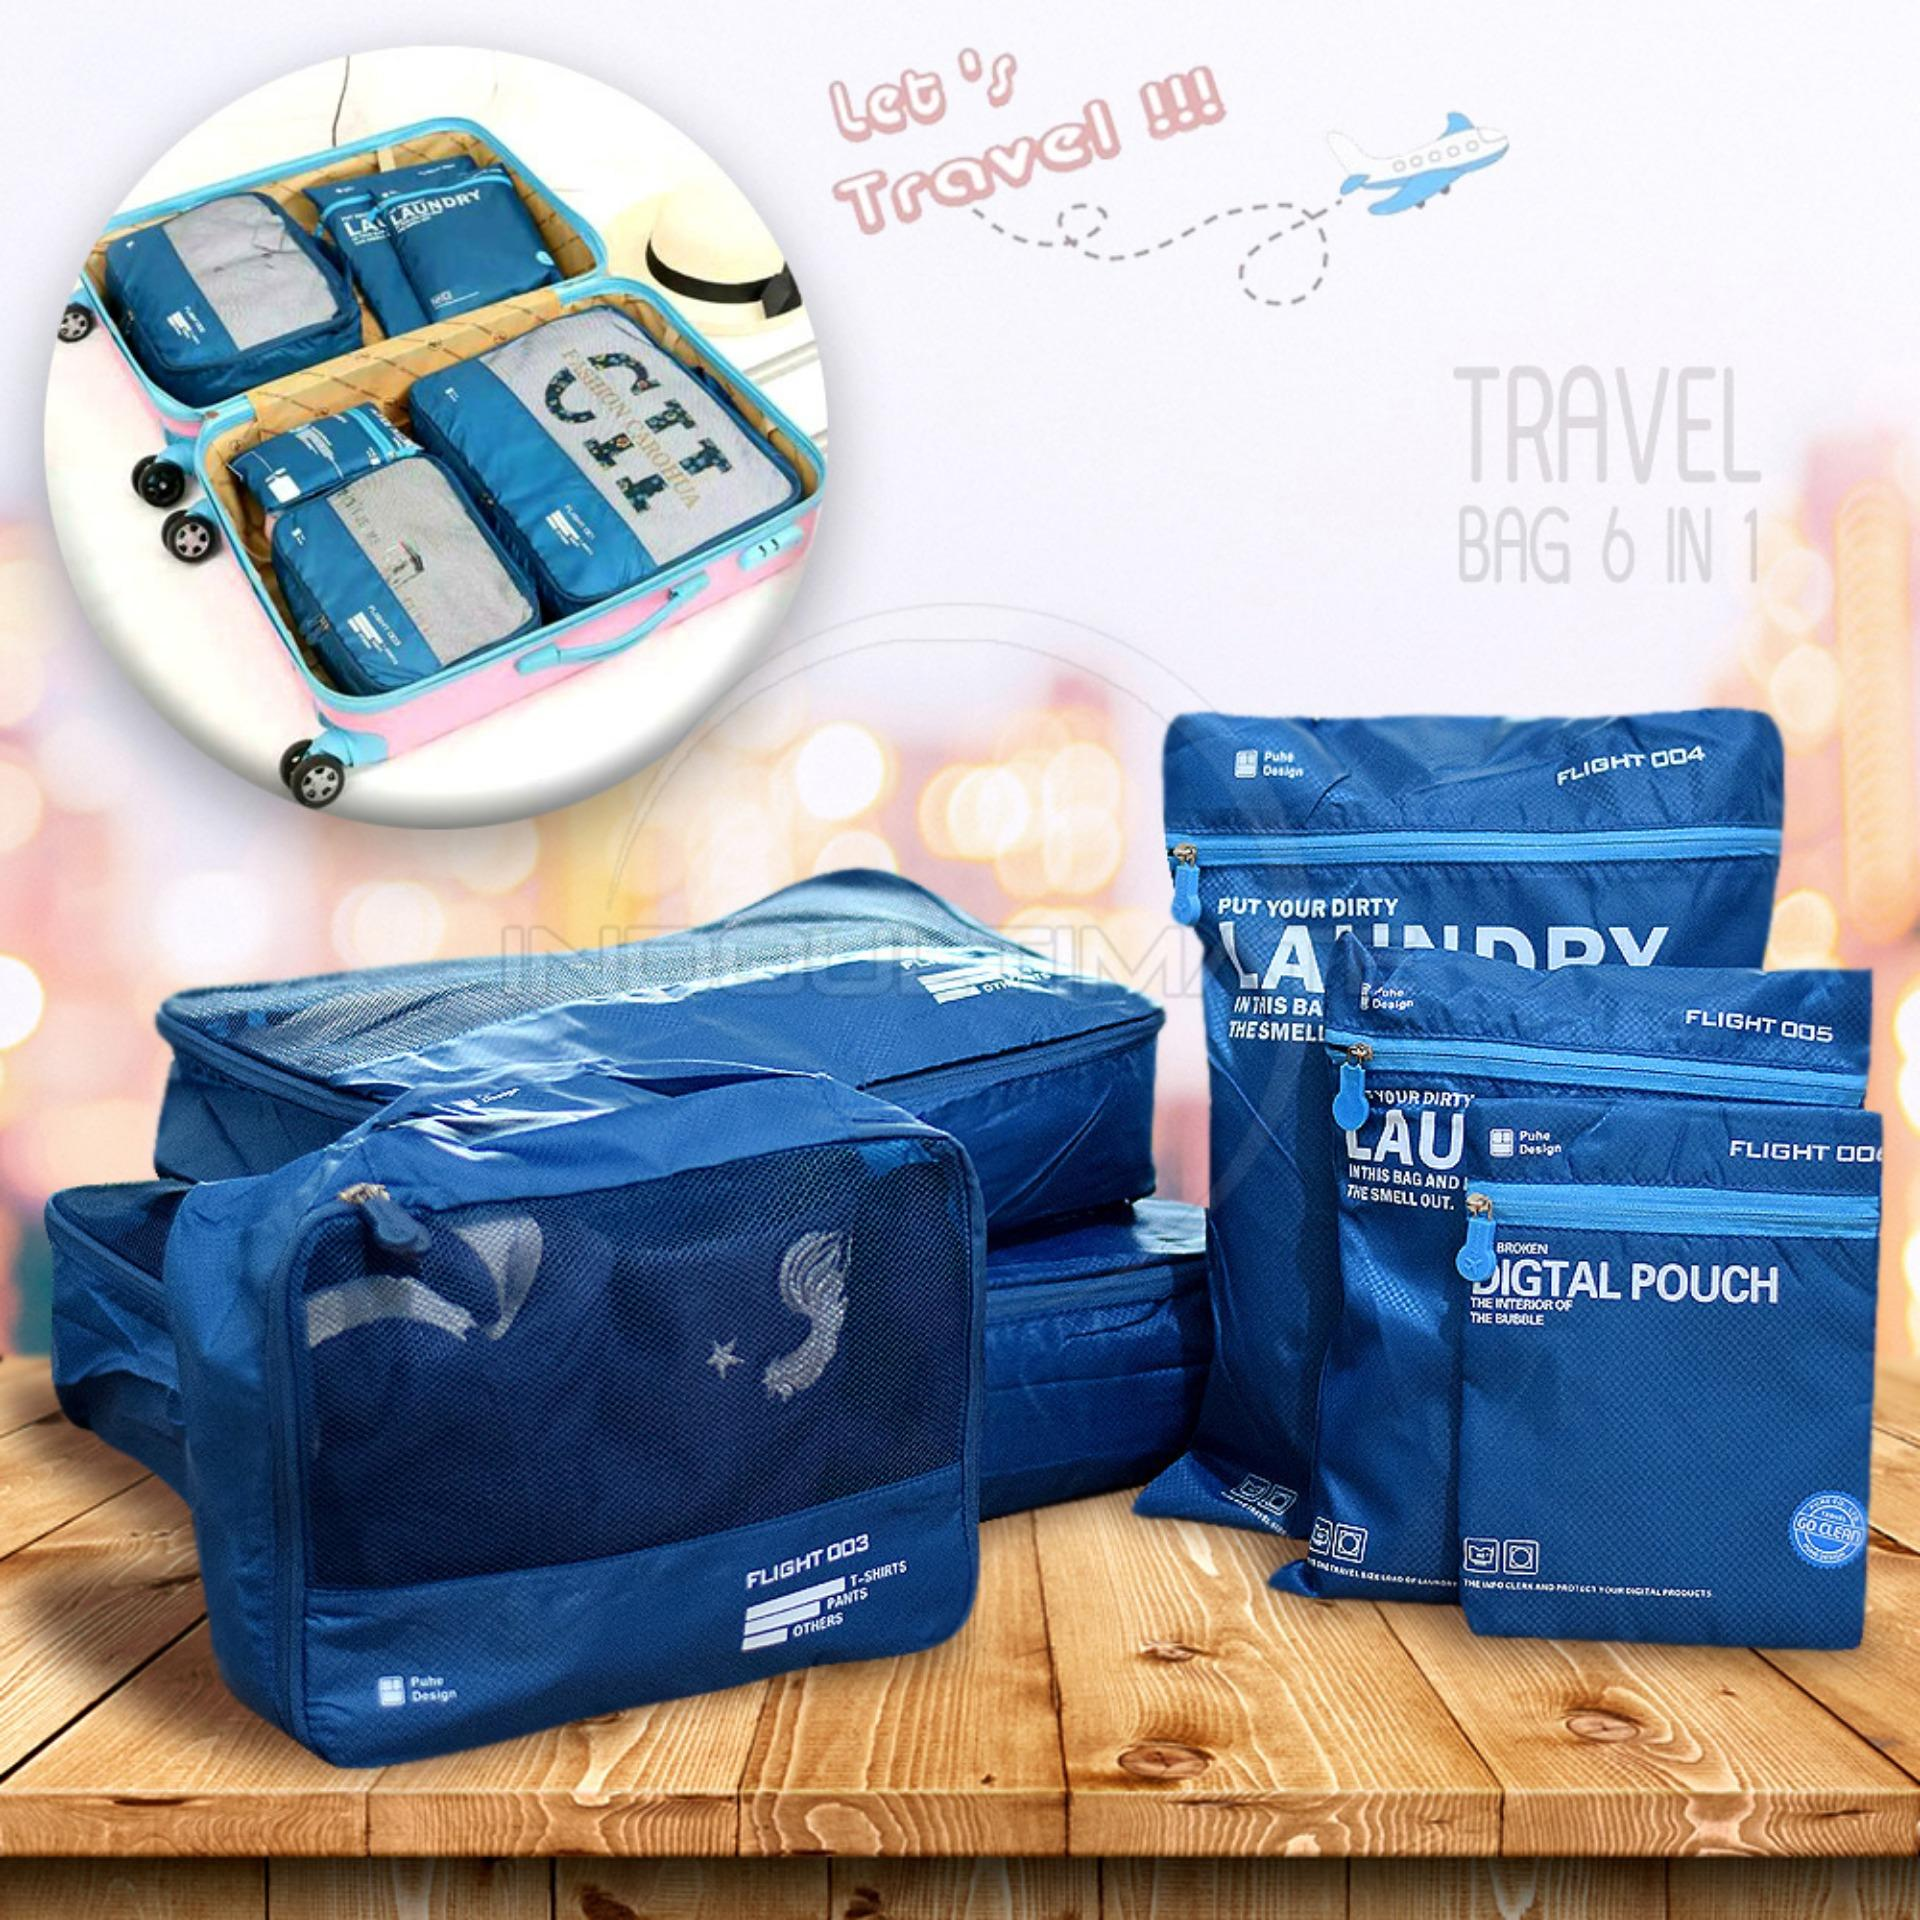 Beli Ultimate Travel Bag 6In1 Organizer Or 60 01 Organizer Space Koper 1 Set Dark Blue Pake Kartu Kredit